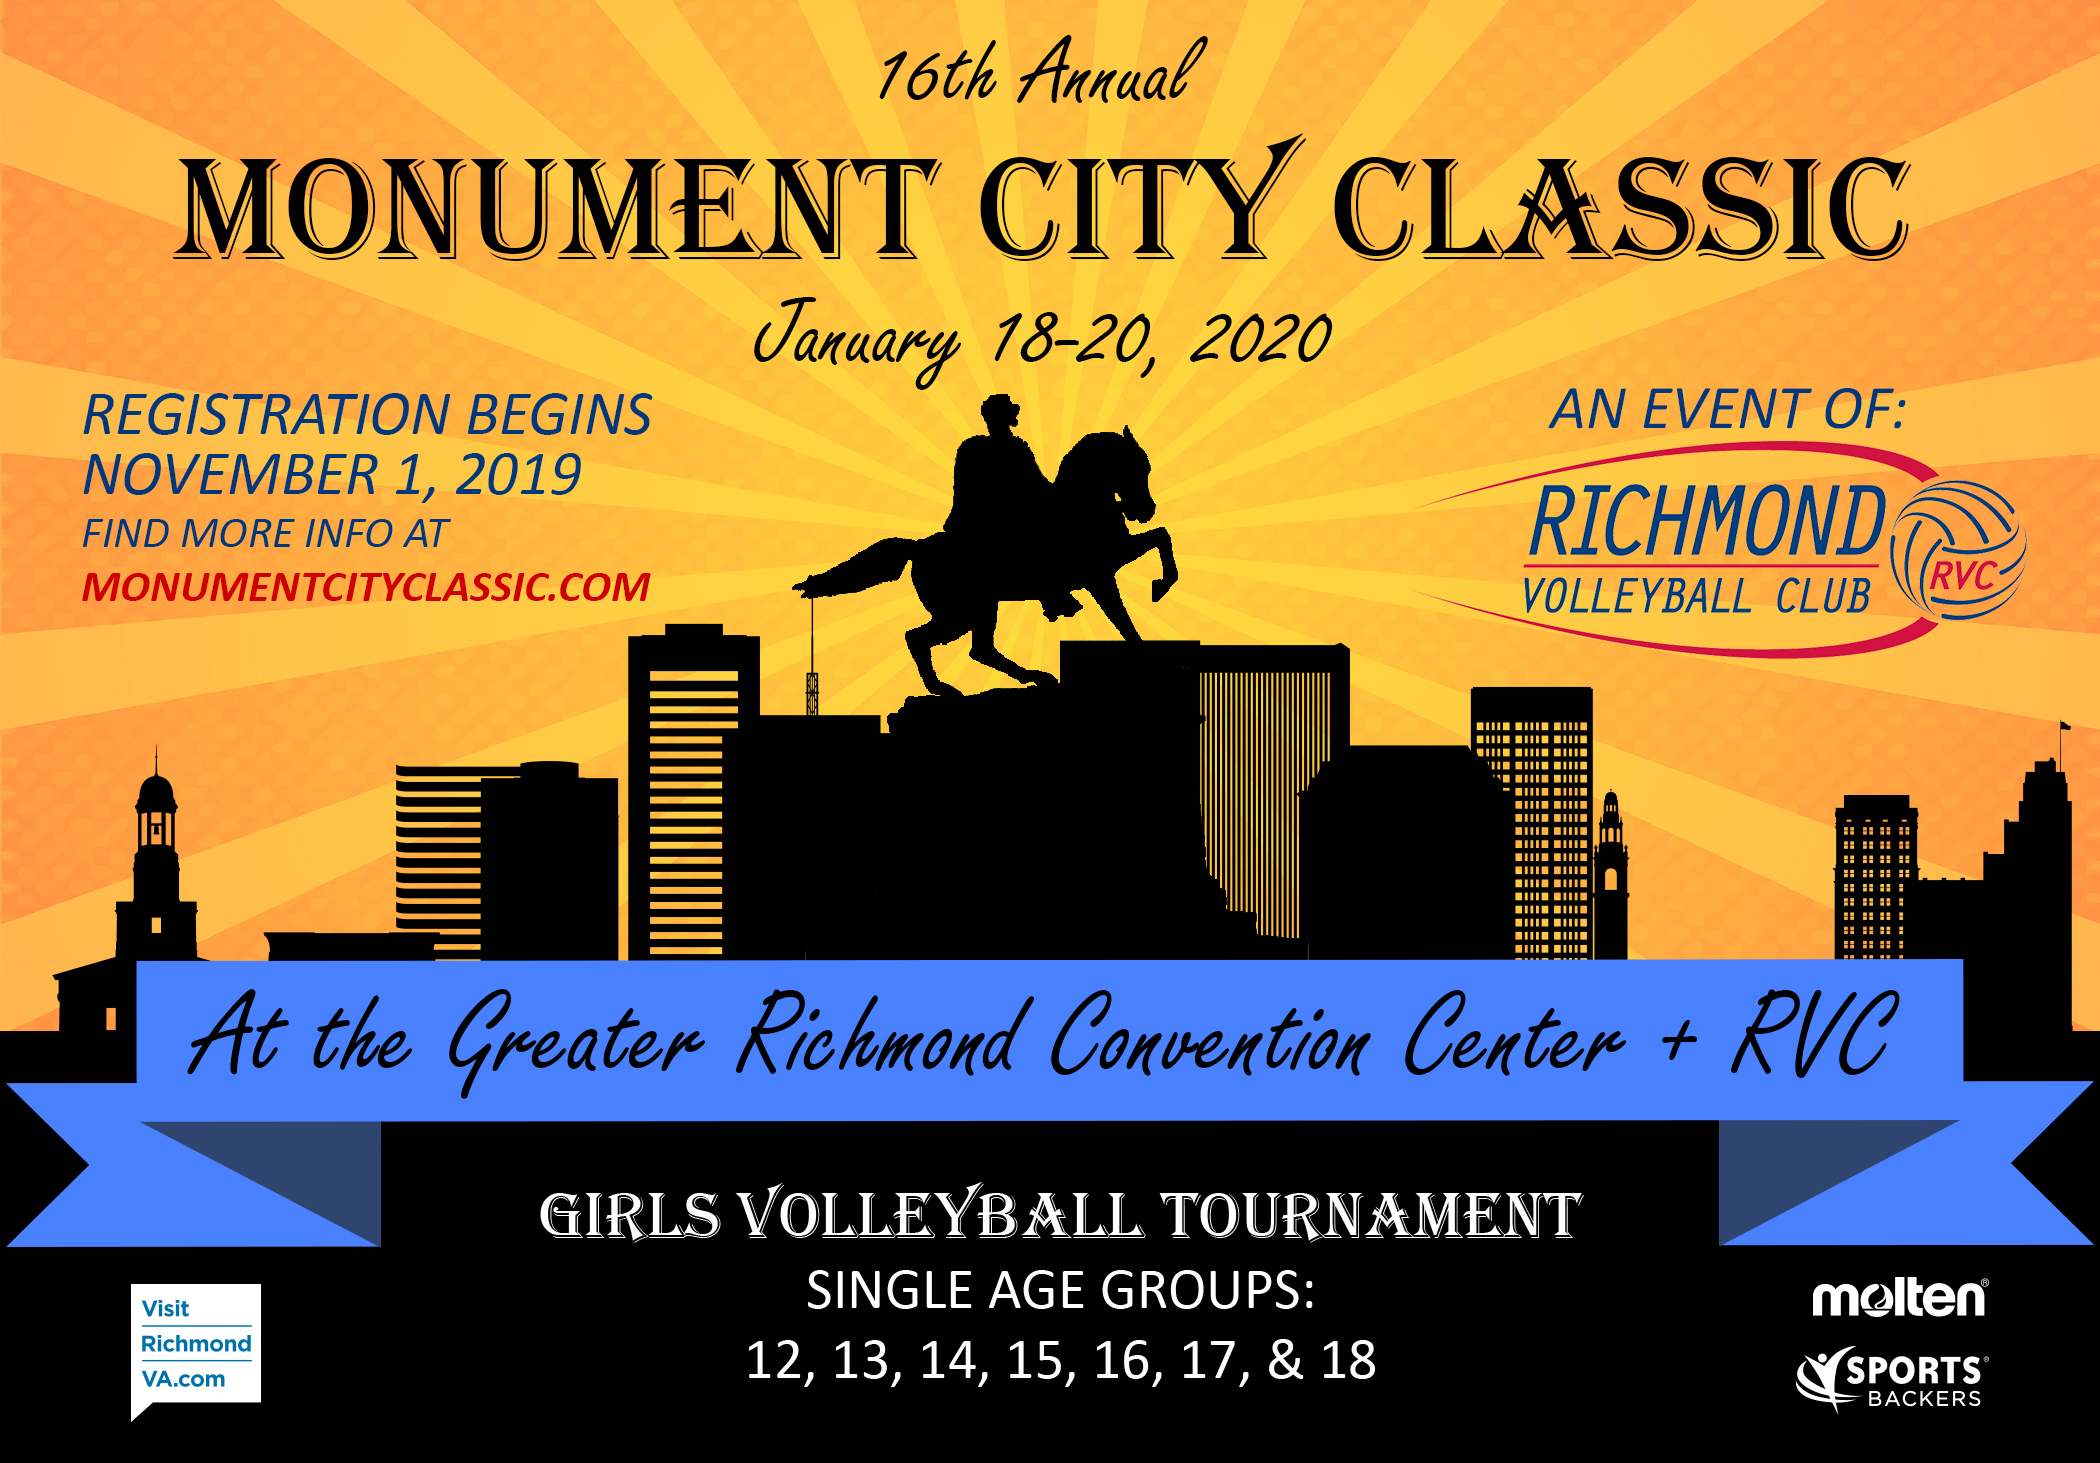 Monument City Classic girls volleyball tournament over Martin Luther King weekend January 18, 19, and 20 help in Richmond, Virginia